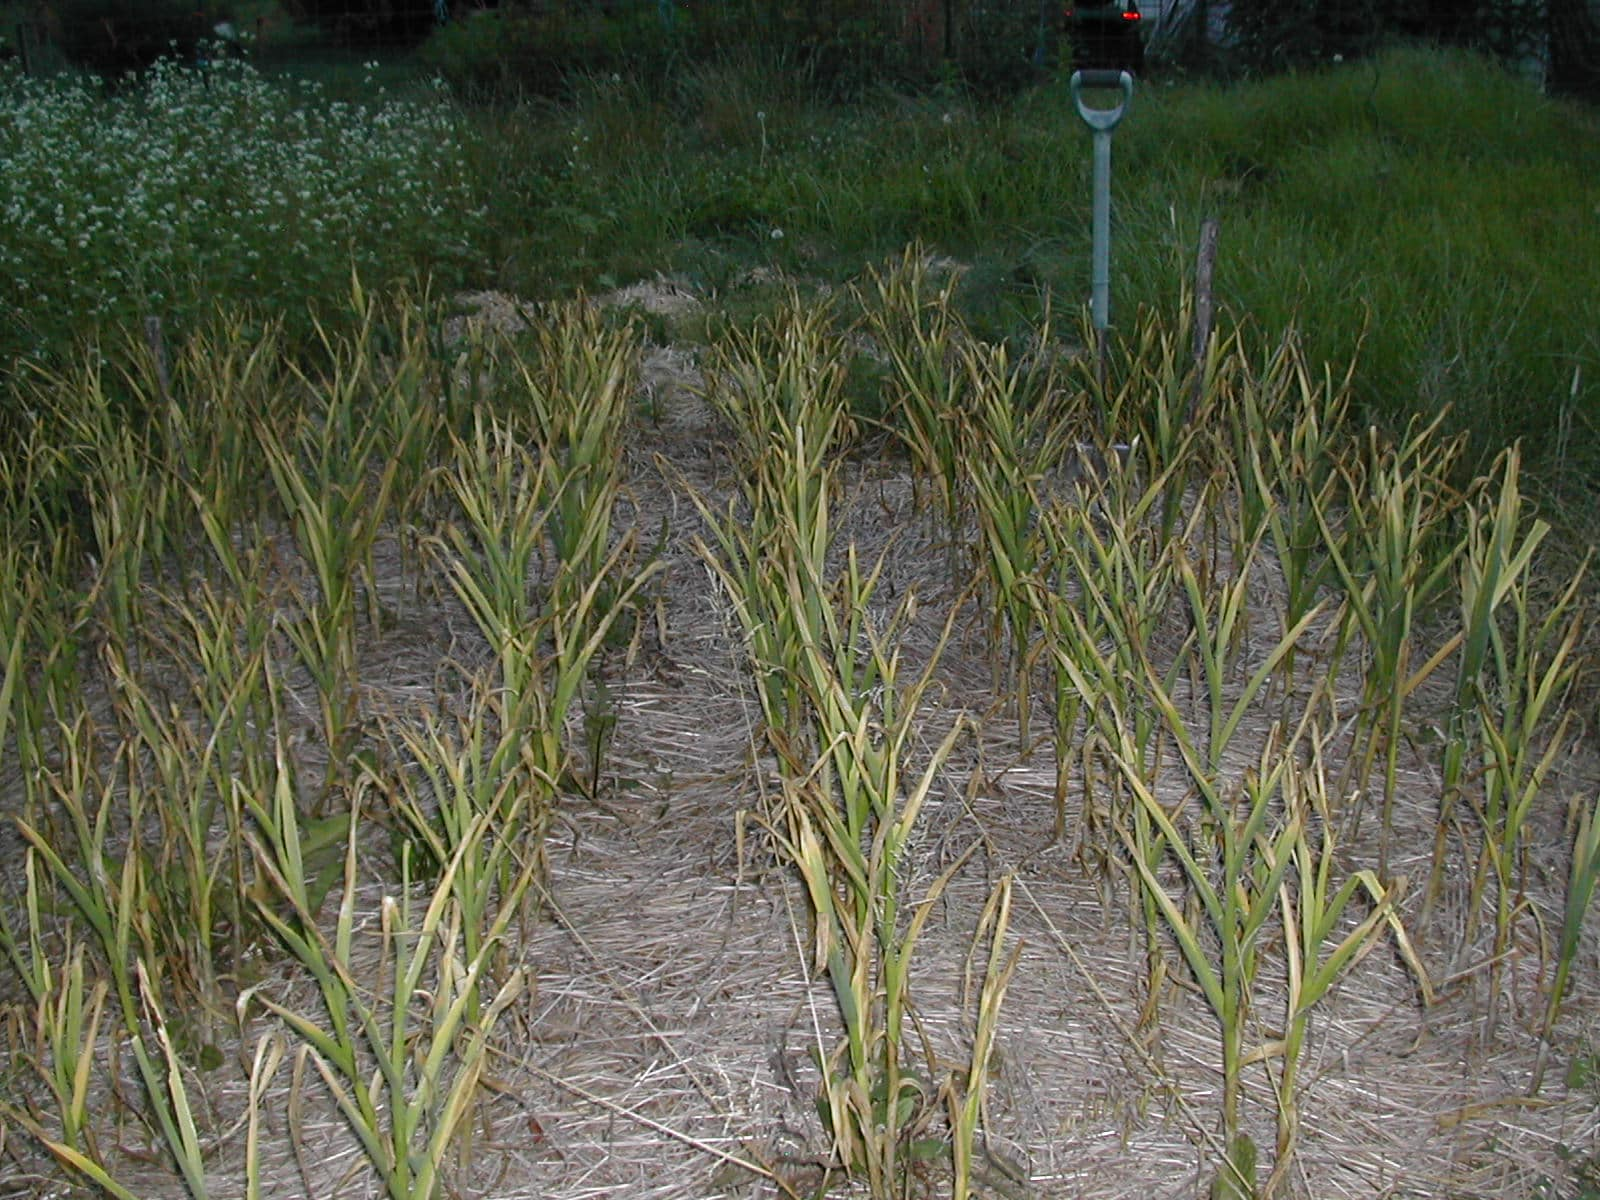 Garlic in the mulched field before harvest.